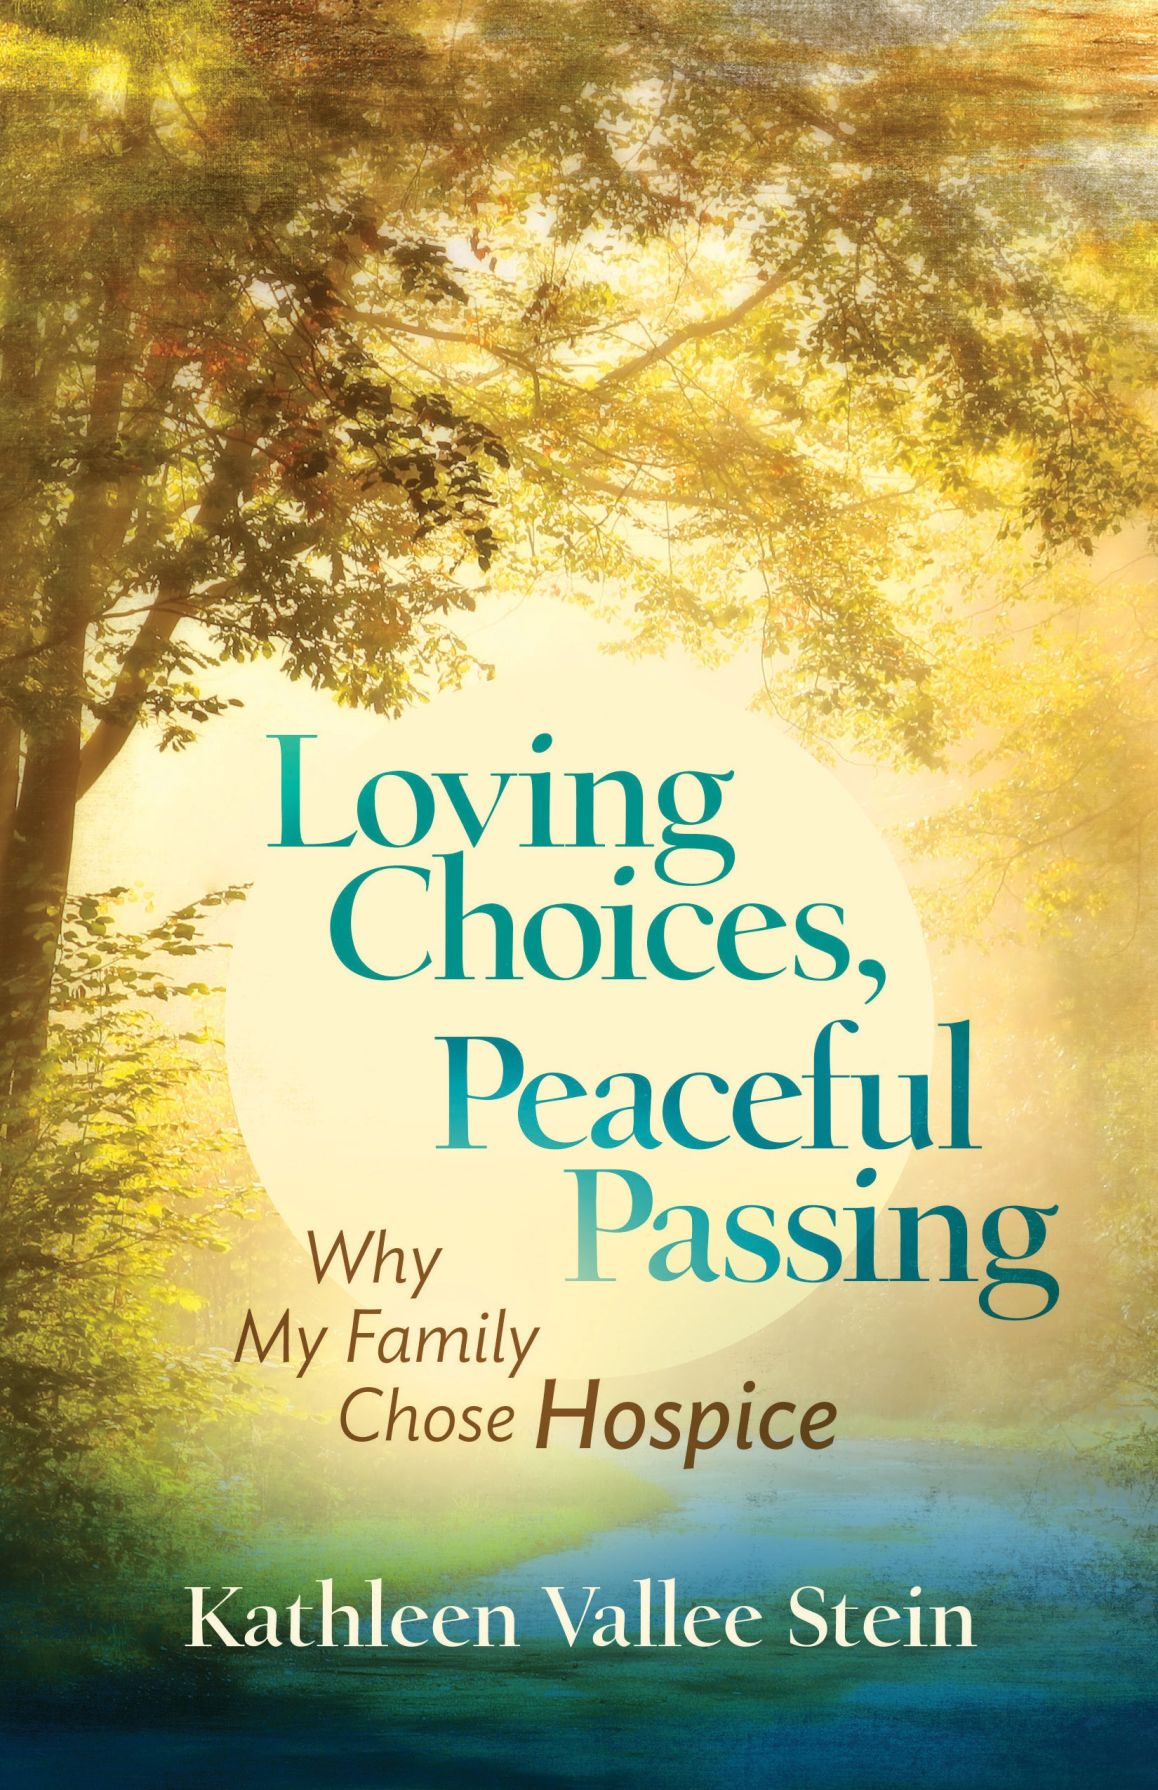 Loving Choices, Peaceful Passing, book cover